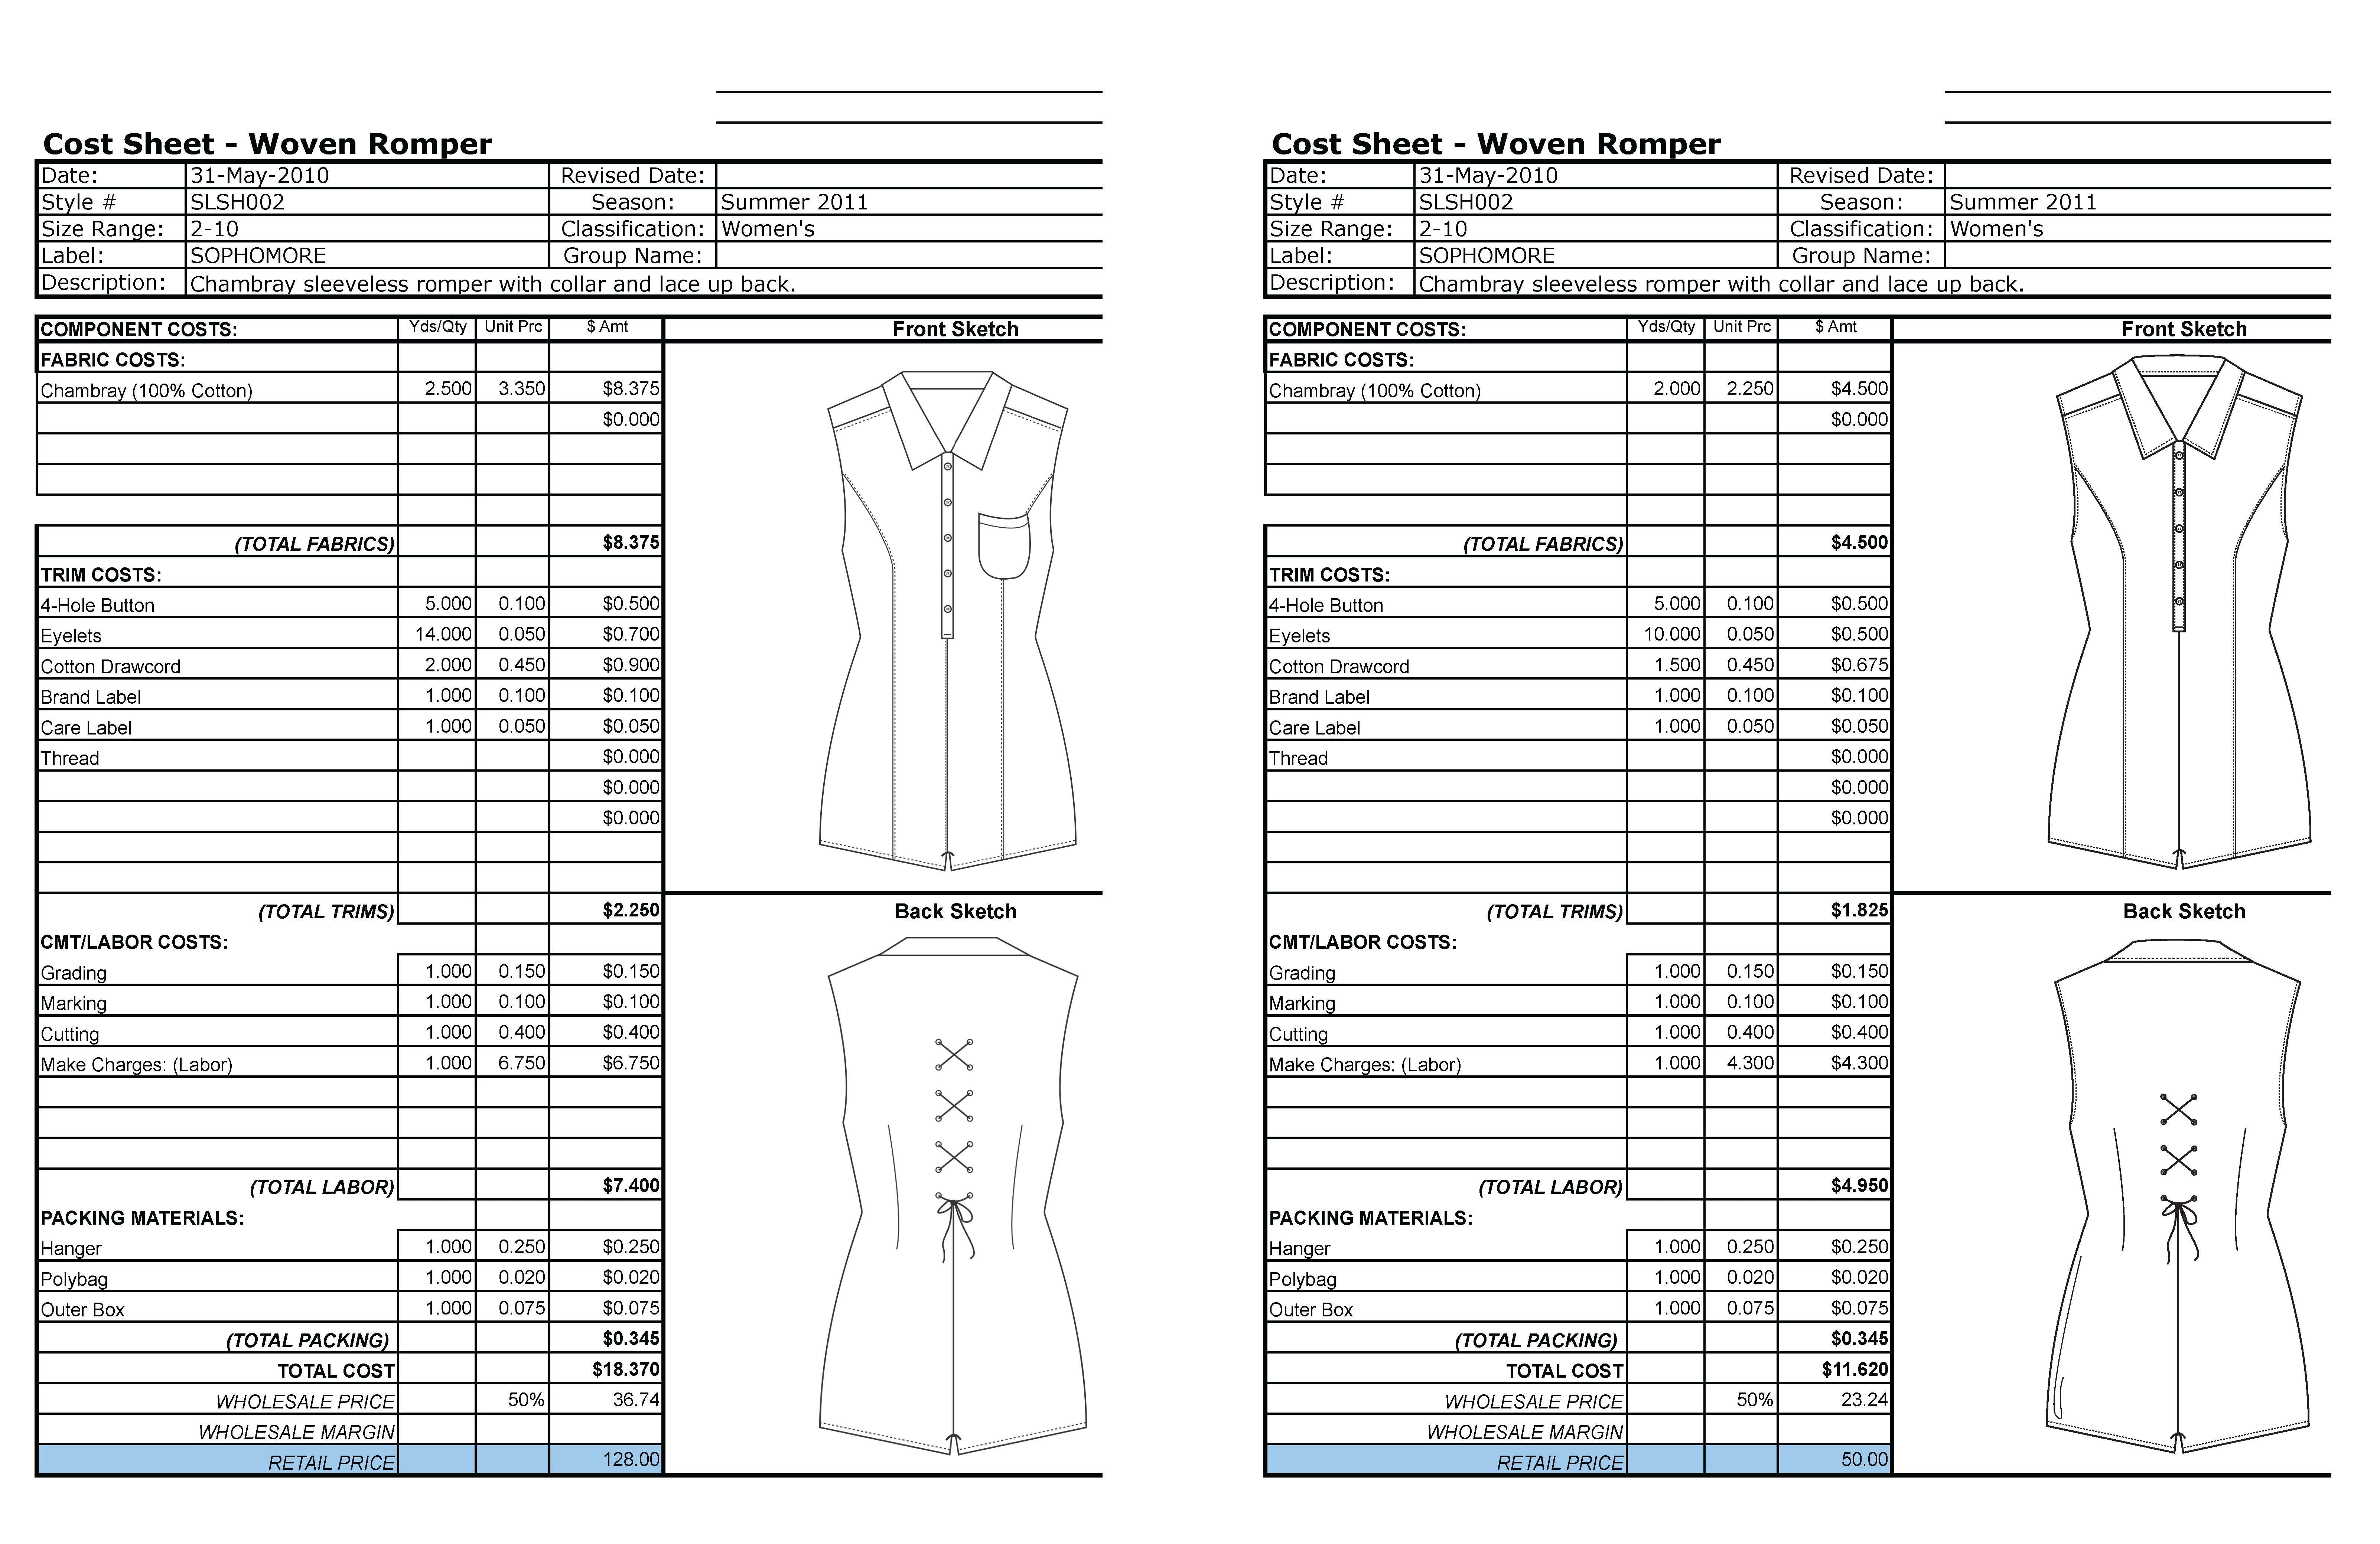 Garment Costing Sheet Google Search Technical Paper Crafts Diy Cost Sheet